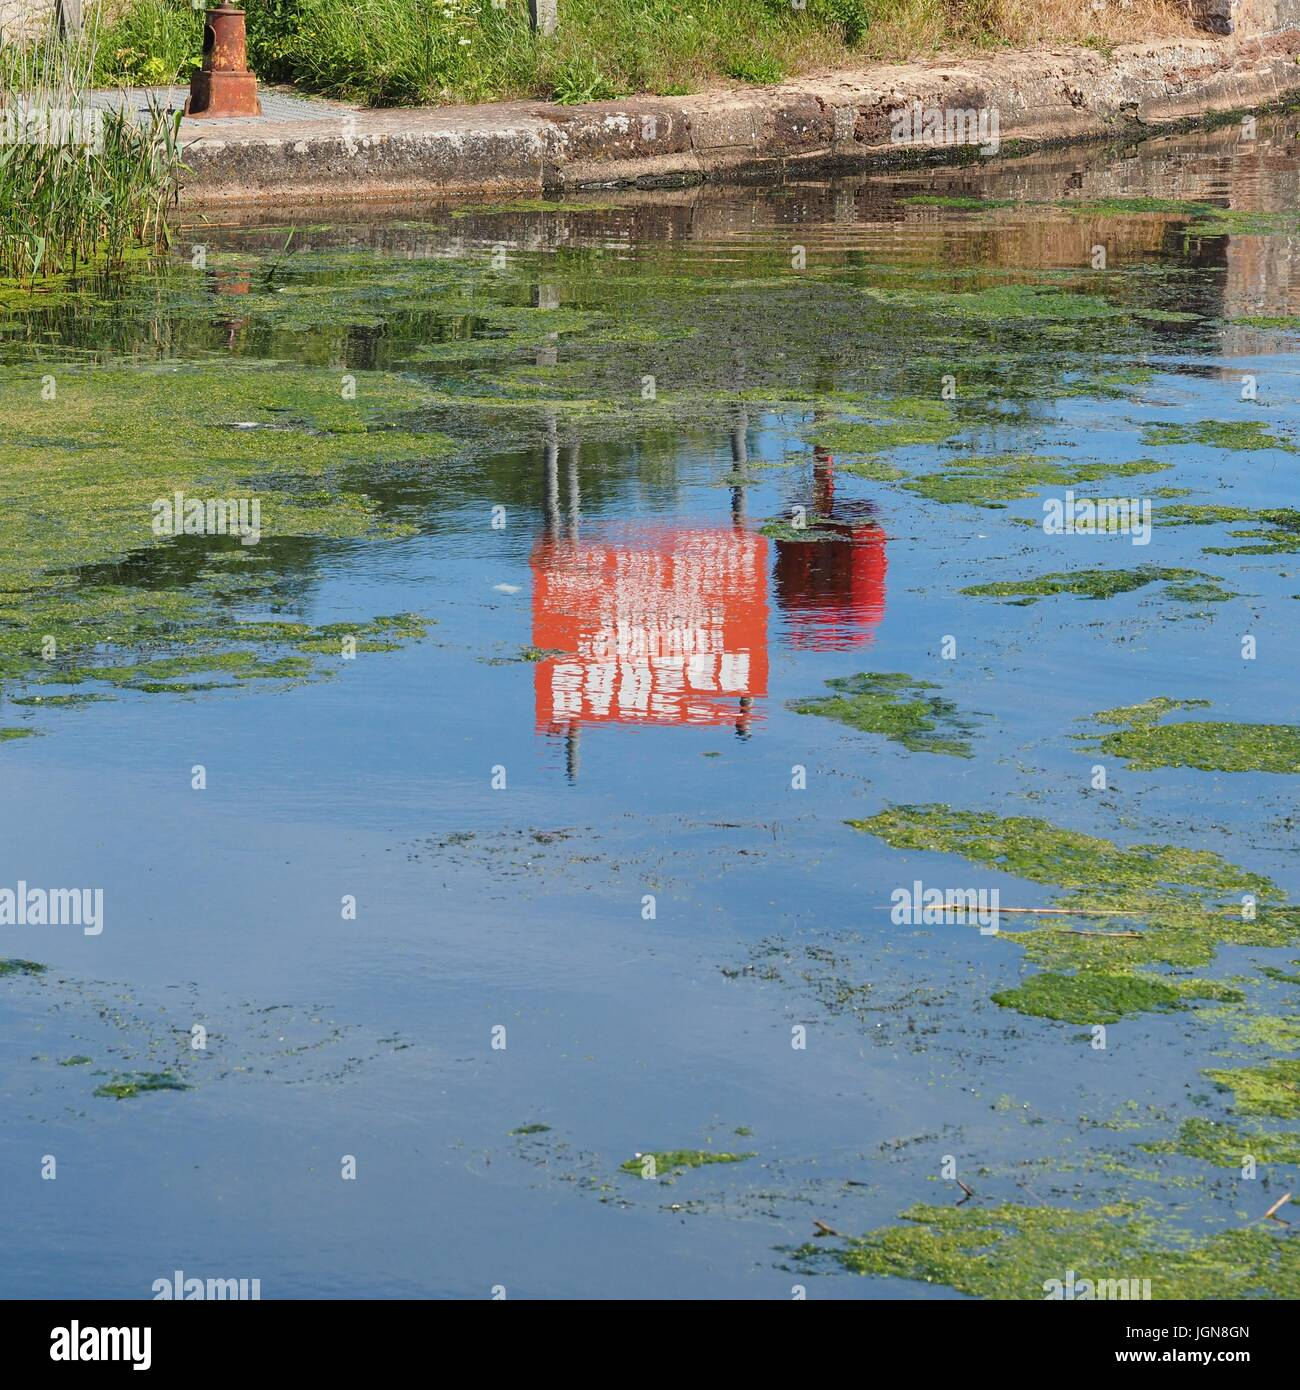 Danger do not drag anchor 11000 volt cable sign reflected in Exeter Canal Stock Photo